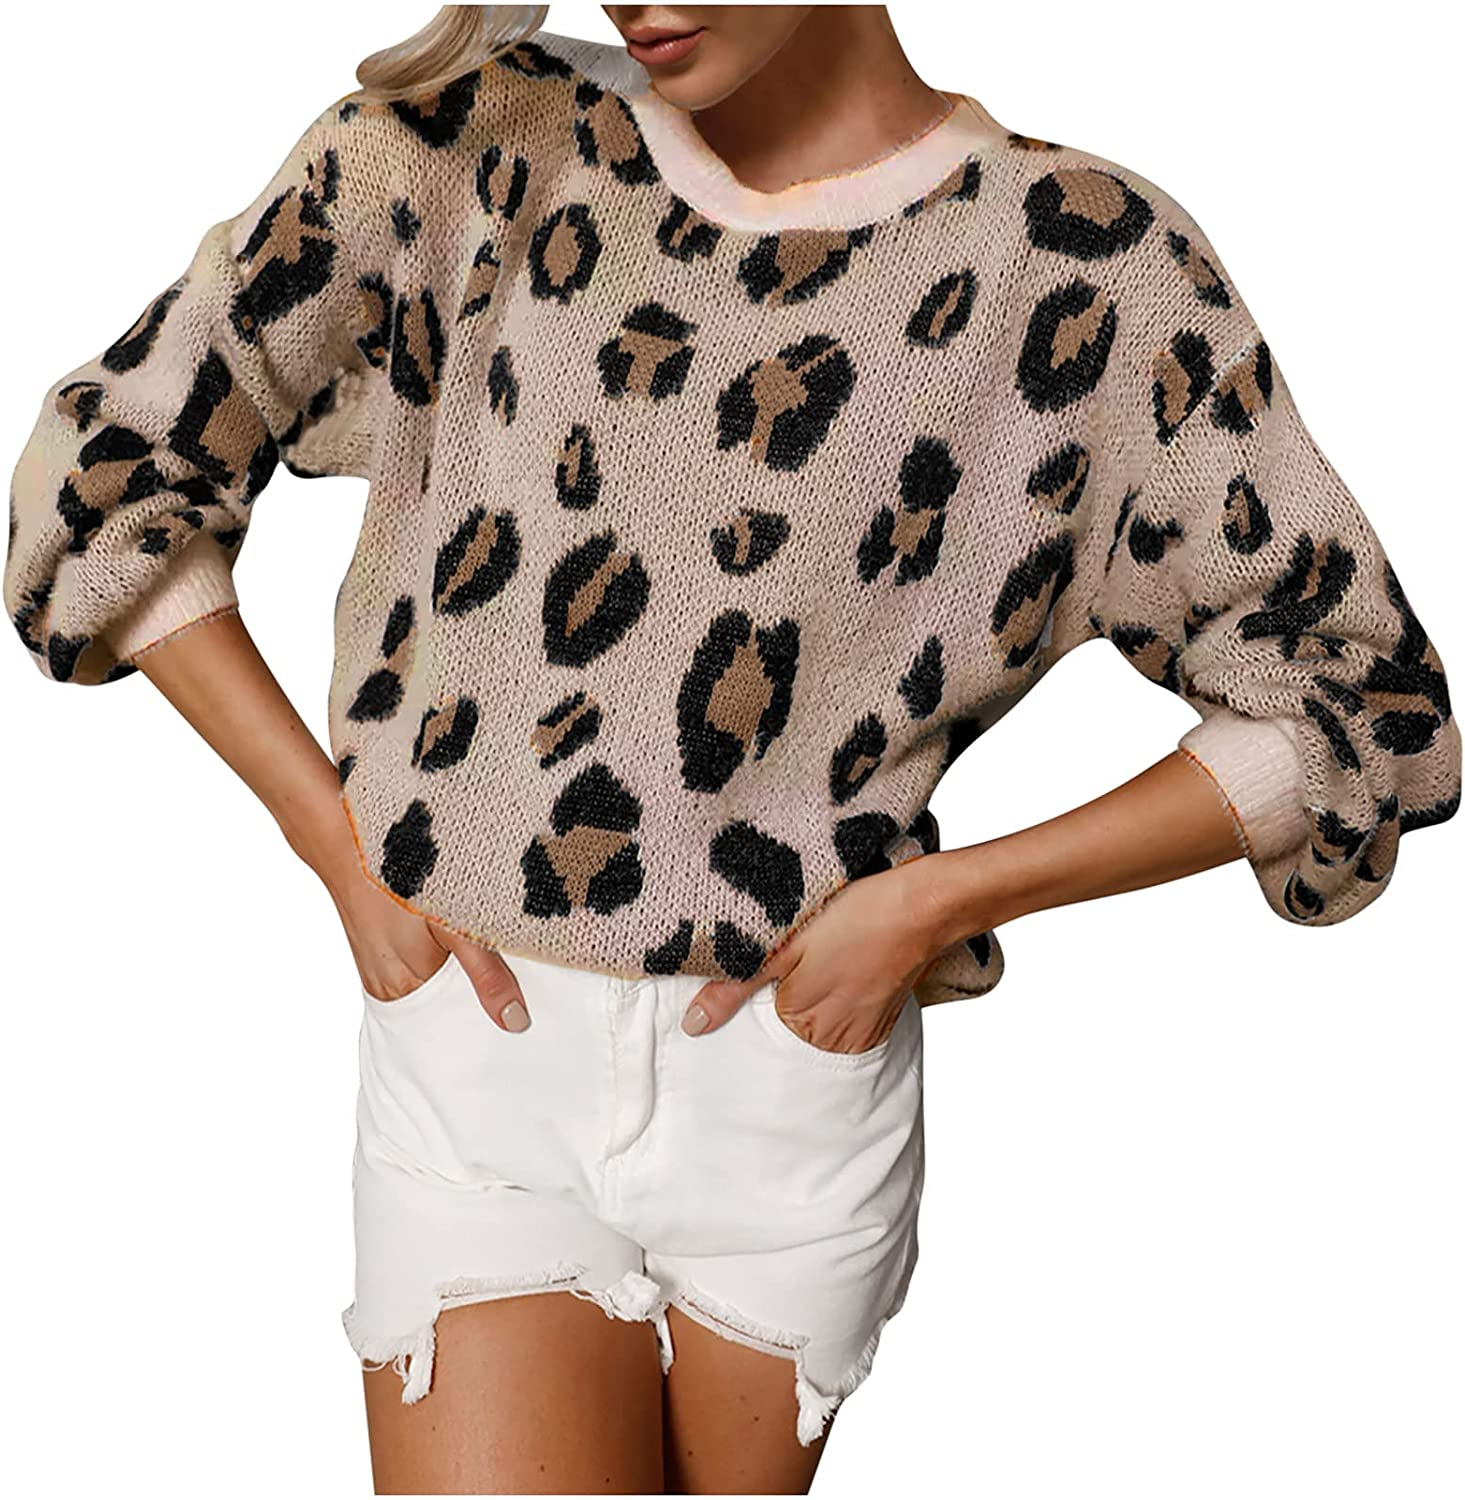 Round Neck Leopard Print Knitted Pullover Sweater Tops for Women Balloon Sleeve Crewneck Casual Loose Sweatshirts